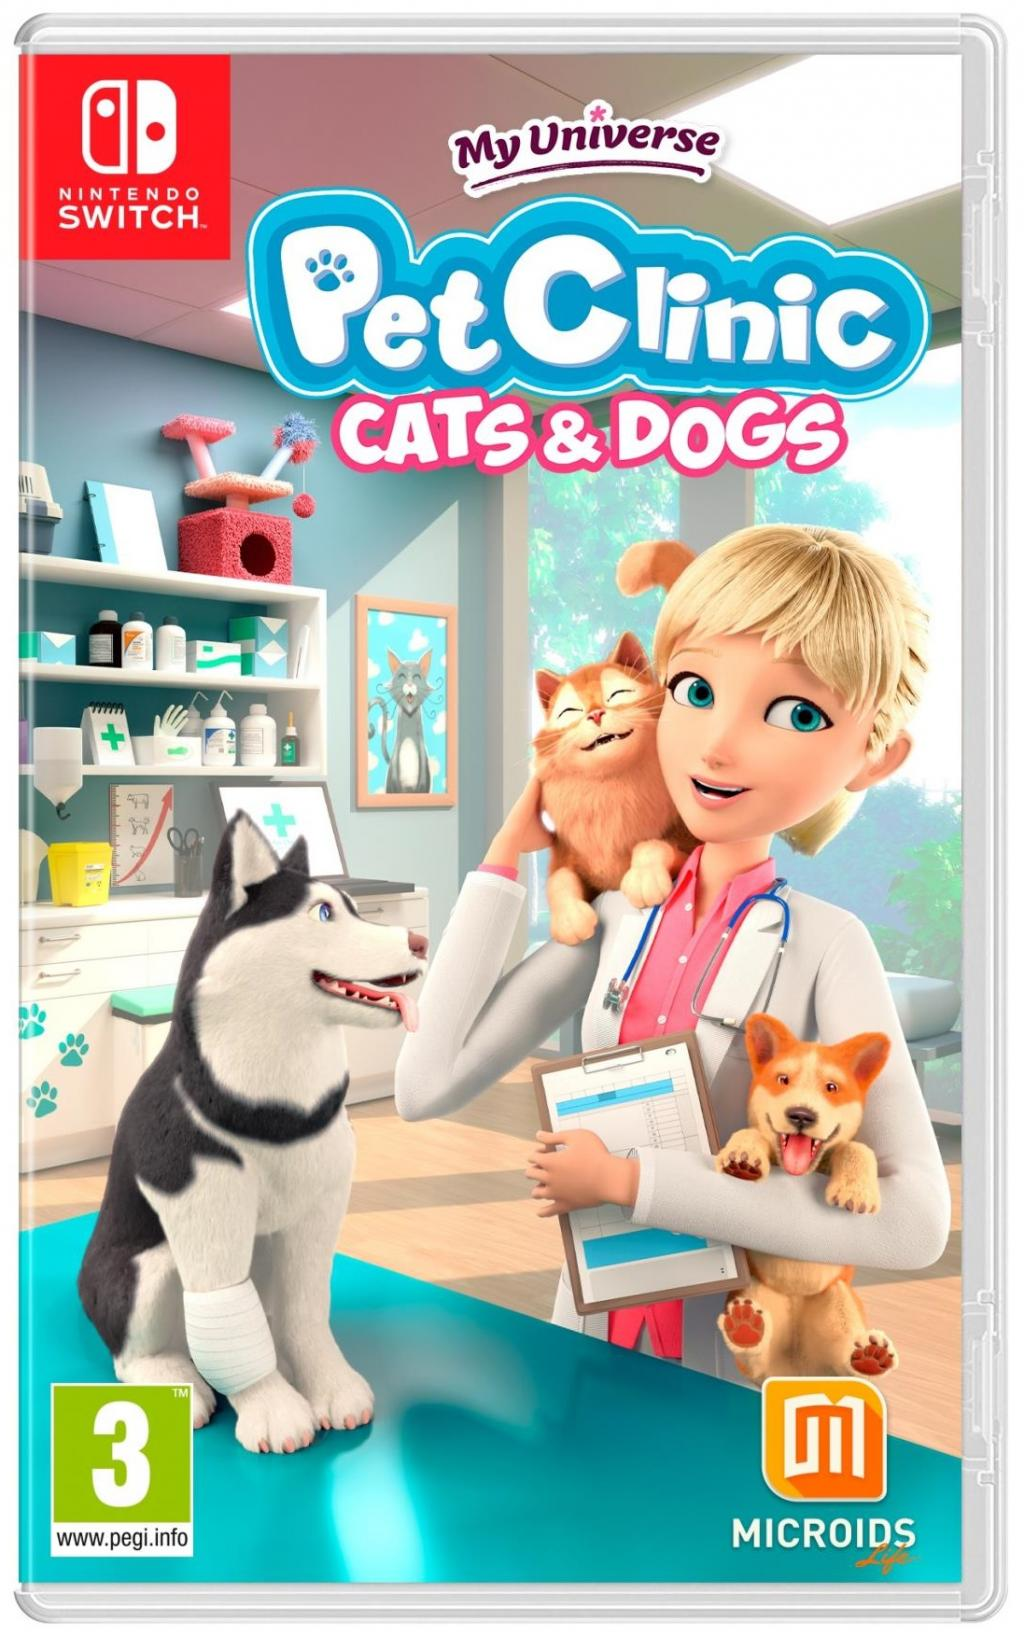 My Universe: Pet Clinic Cats & Dogs_1